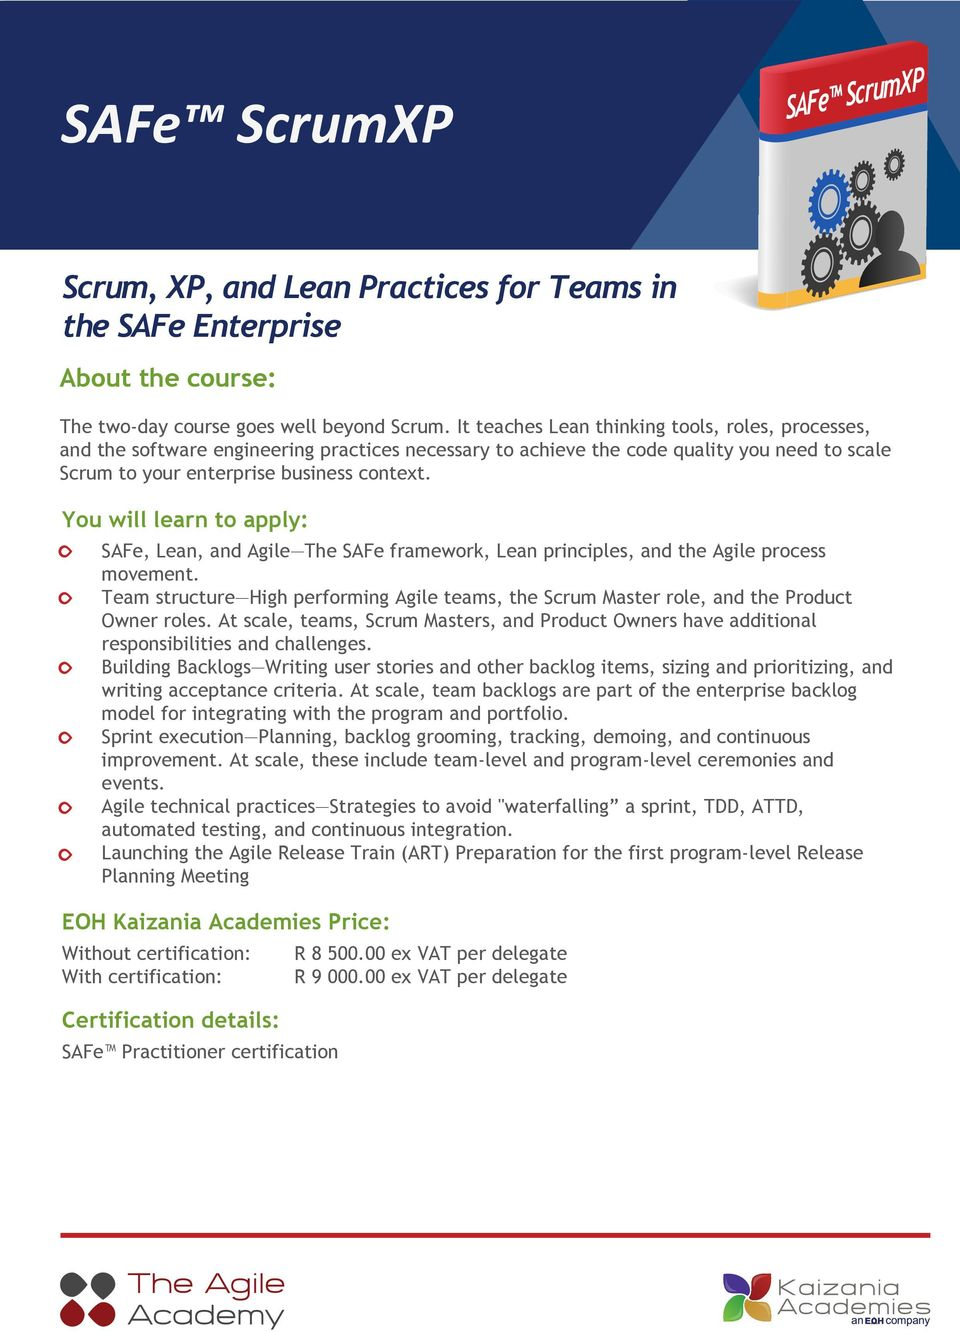 You will learn to apply: SAFe, Lean, and Agile The SAFe framework, Lean principles, and the Agile process movement.